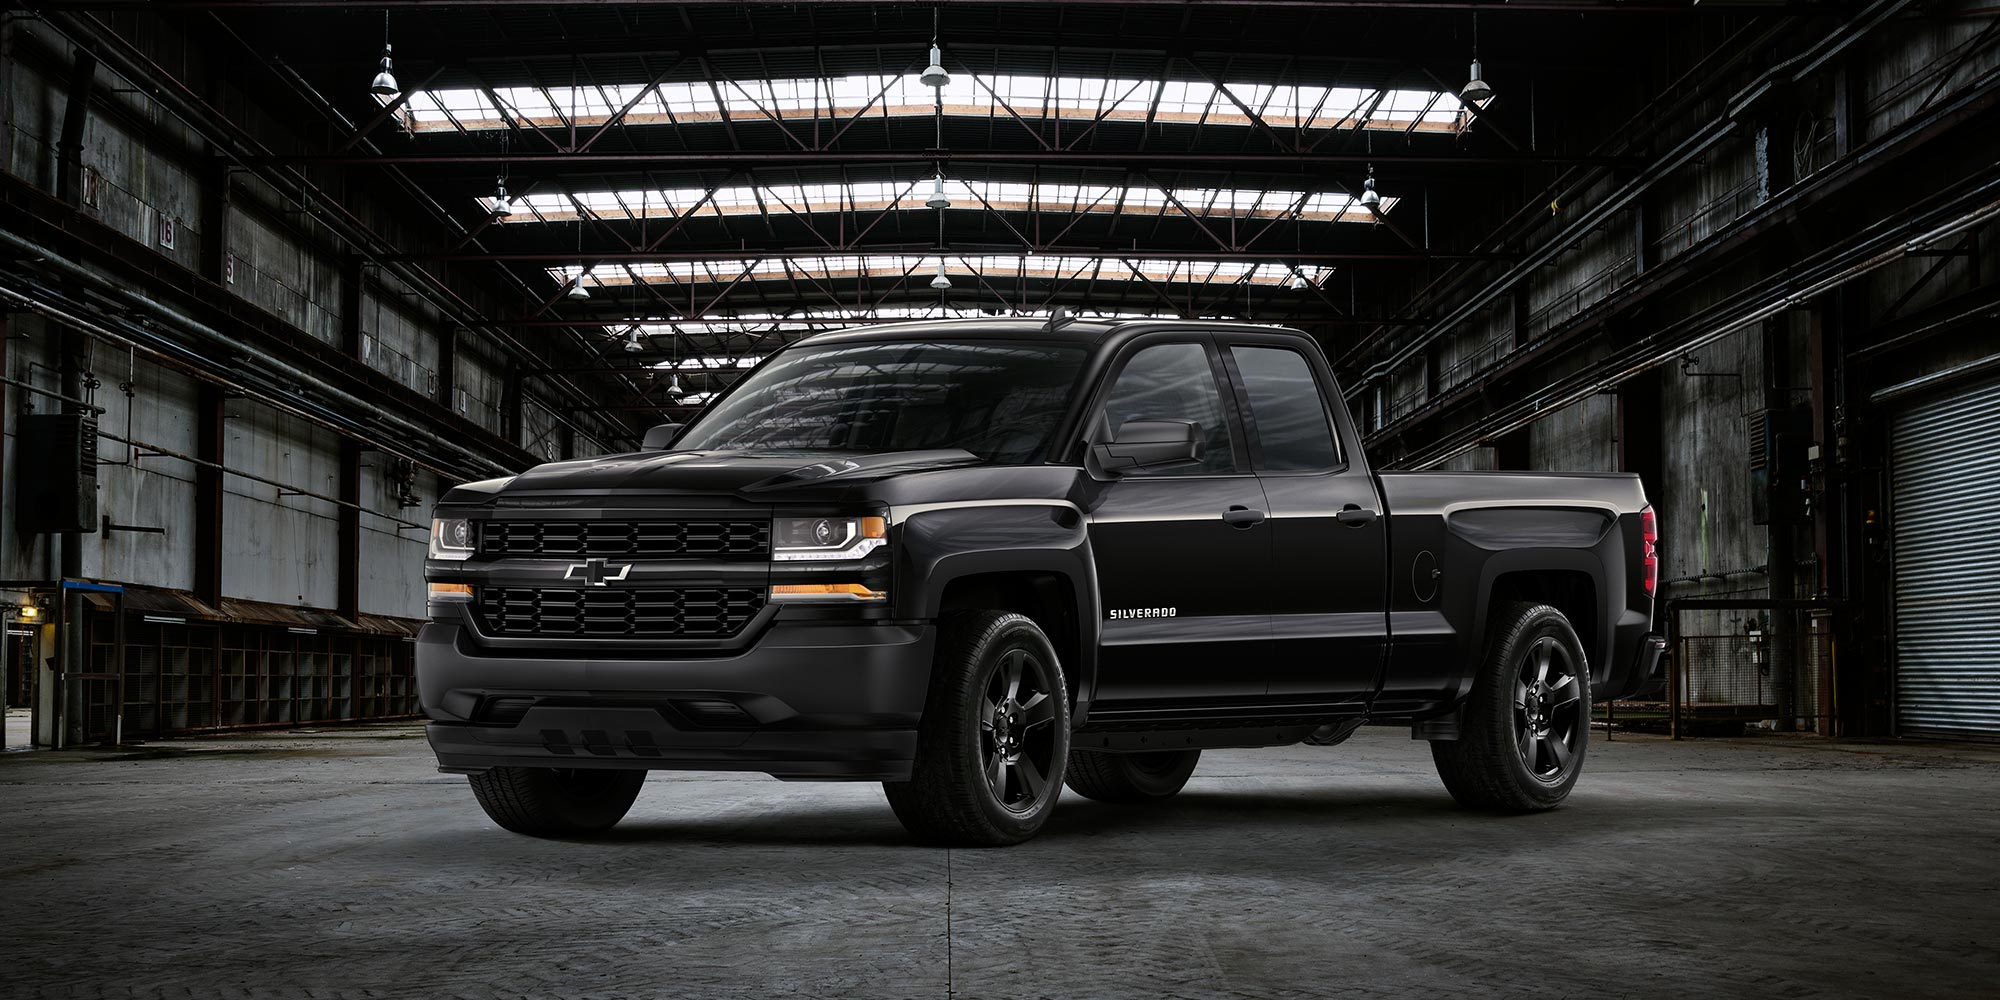 Ediciones especiales de Chevy Silverado: Black Out